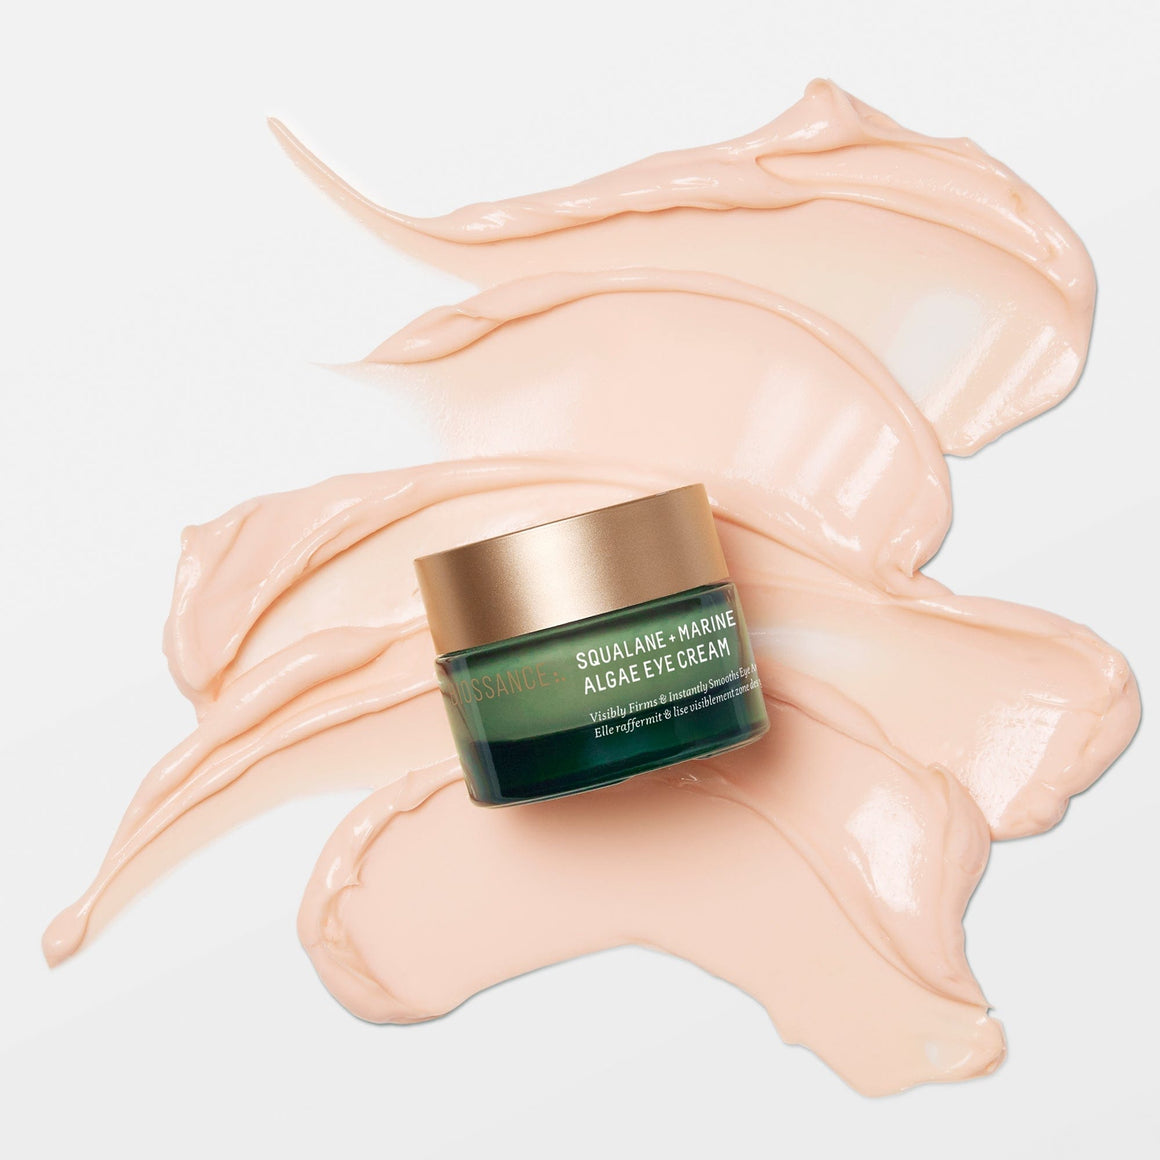 Squalane + Marine Algae Eye Cream